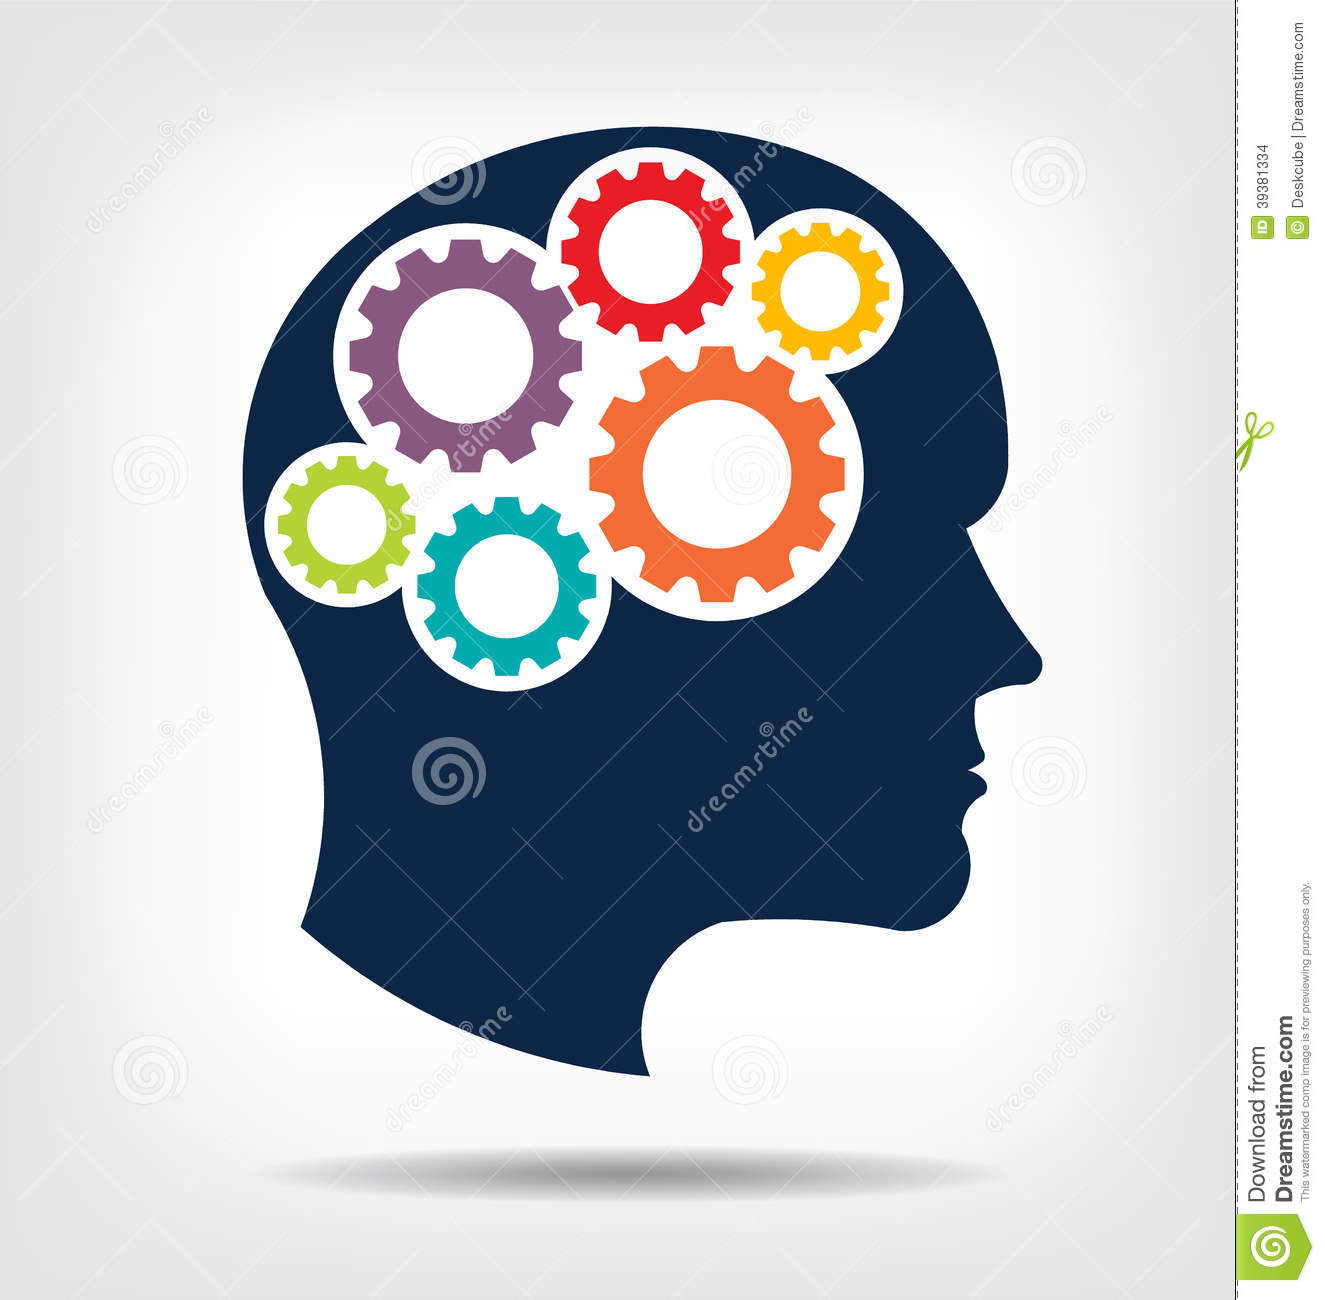 Memories clipart brain science. Thinking png hd transparent